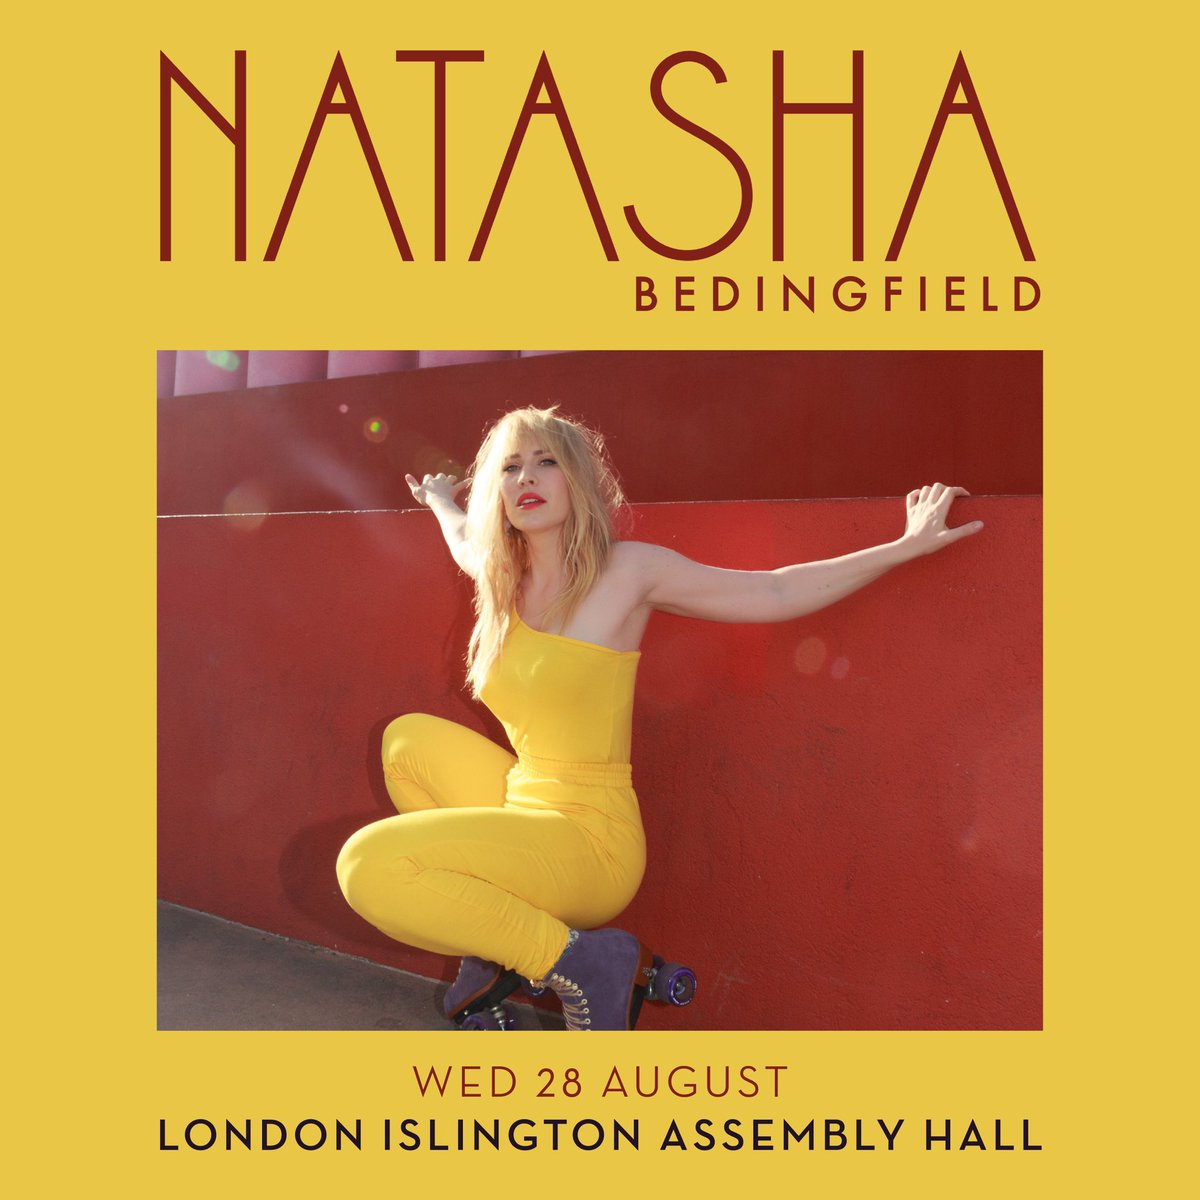 London! Pre-sale tickets are available now! Can't wait to see you all.. https://t.co/fz0pGf26Pz ???? https://t.co/g74KJ2Y5XM